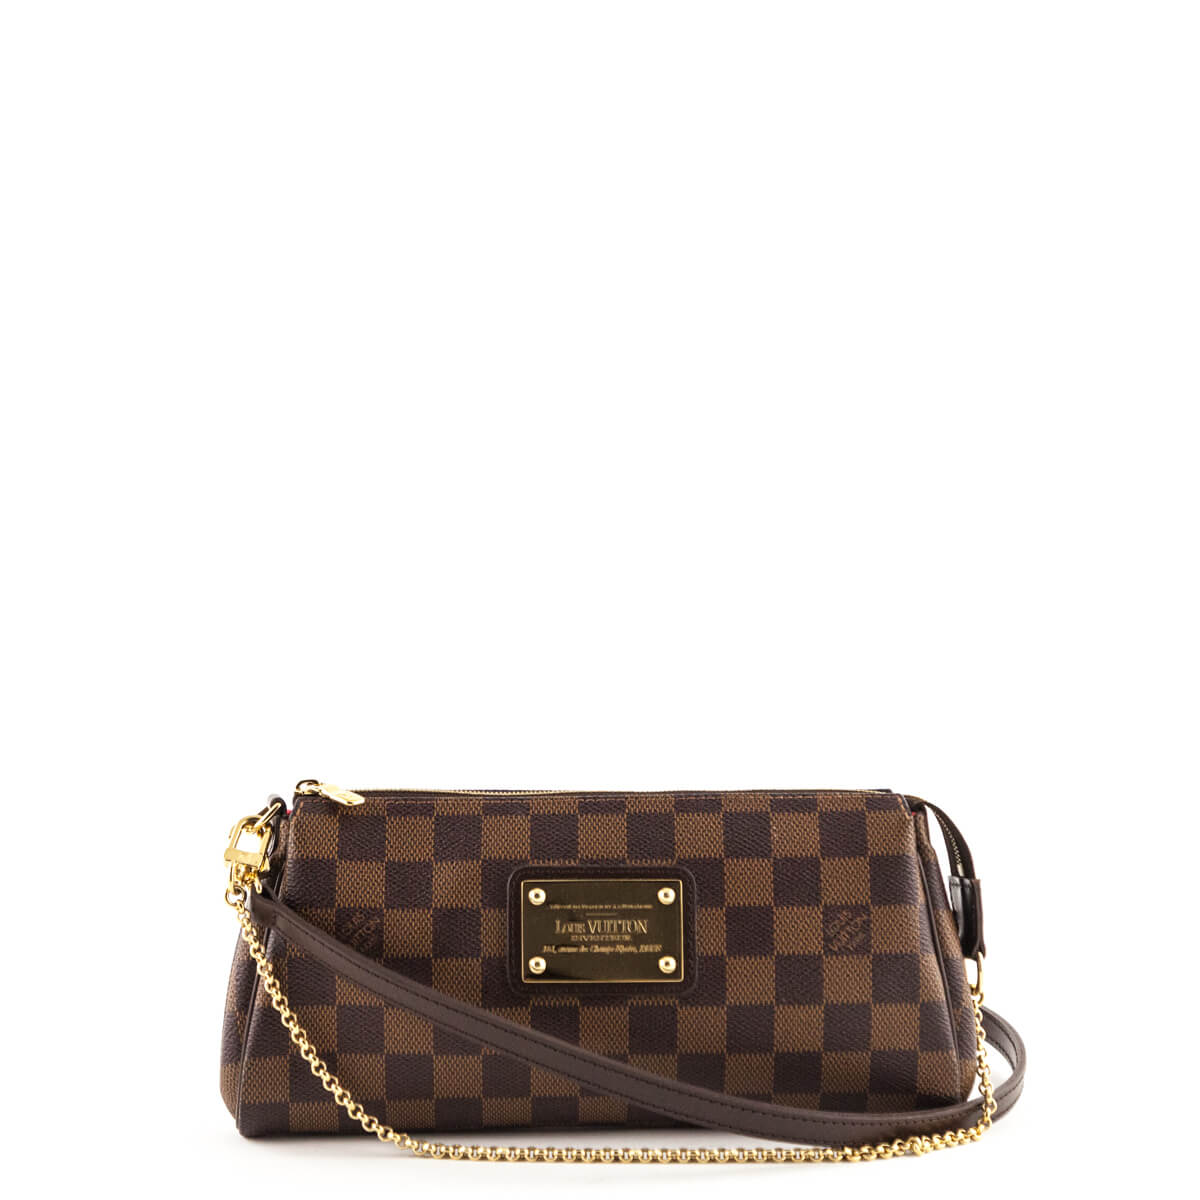 6dc16a3ab3c0 Louis Vuitton Damier Ebene Eva Clutch - LOVE that BAG - Preowned Authentic  Designer Handbags ...